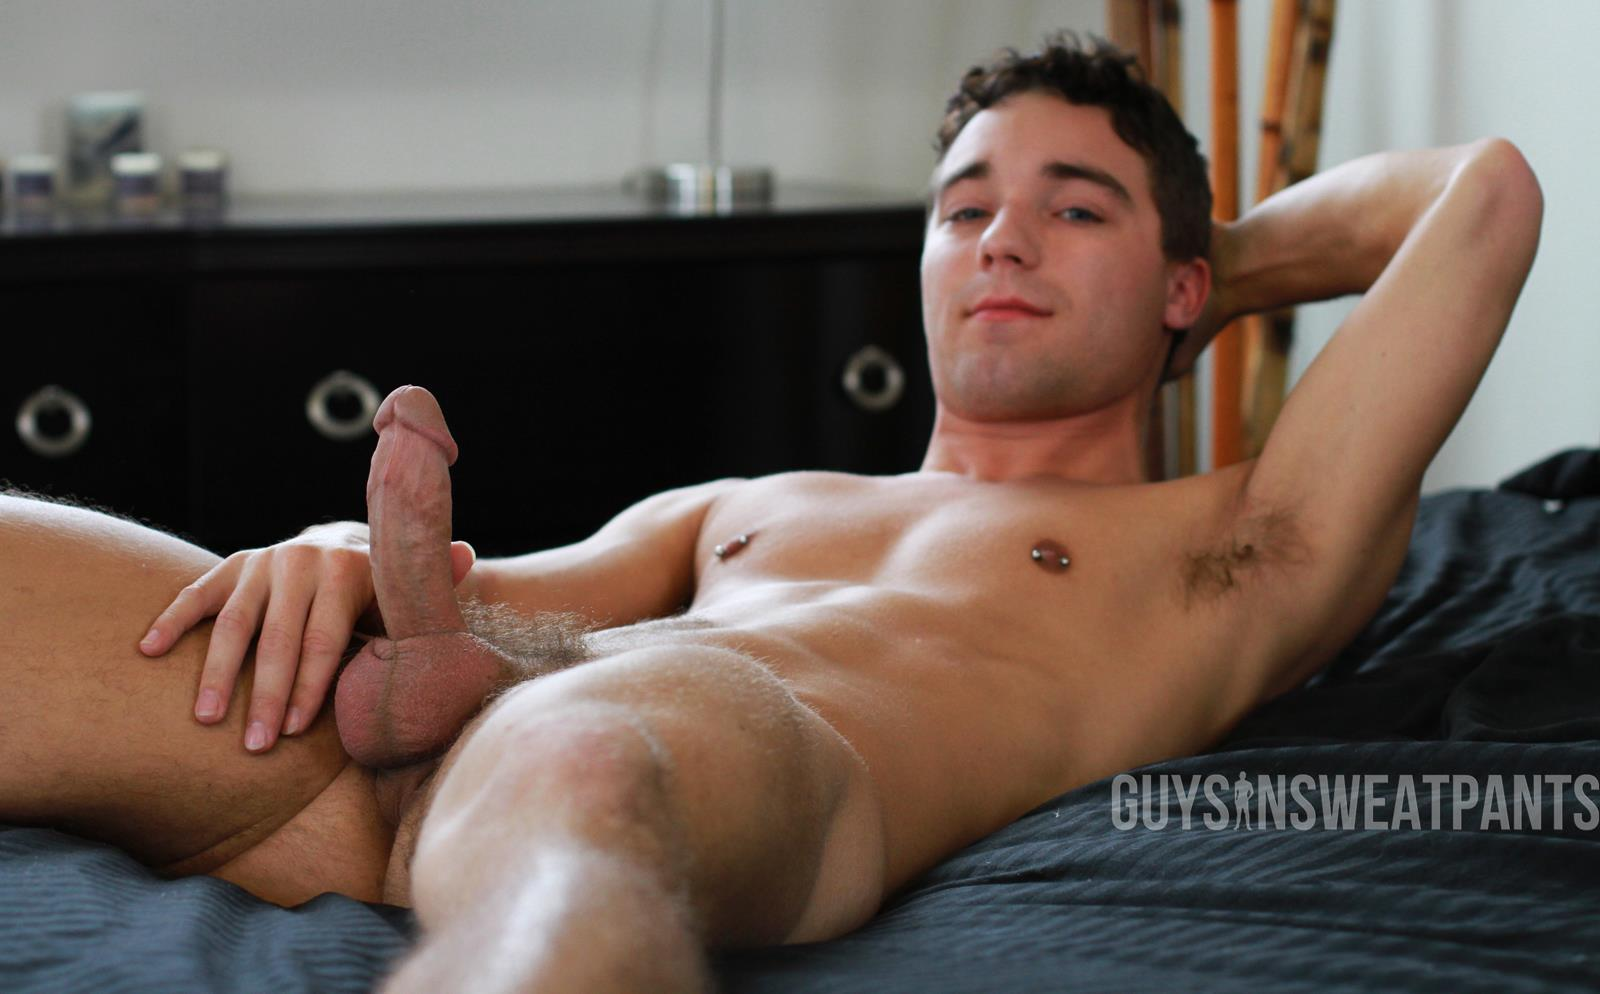 Guys-In-Sweatpants-Kip-Ryker-and-Tyler-Morgan-Real-Twink-Boyfriends-Barebacking-Amateur-Gay-Porn-03 Real Life Amateur Twink Boyfriends Bareback Flip Flopping and Sharing Cum